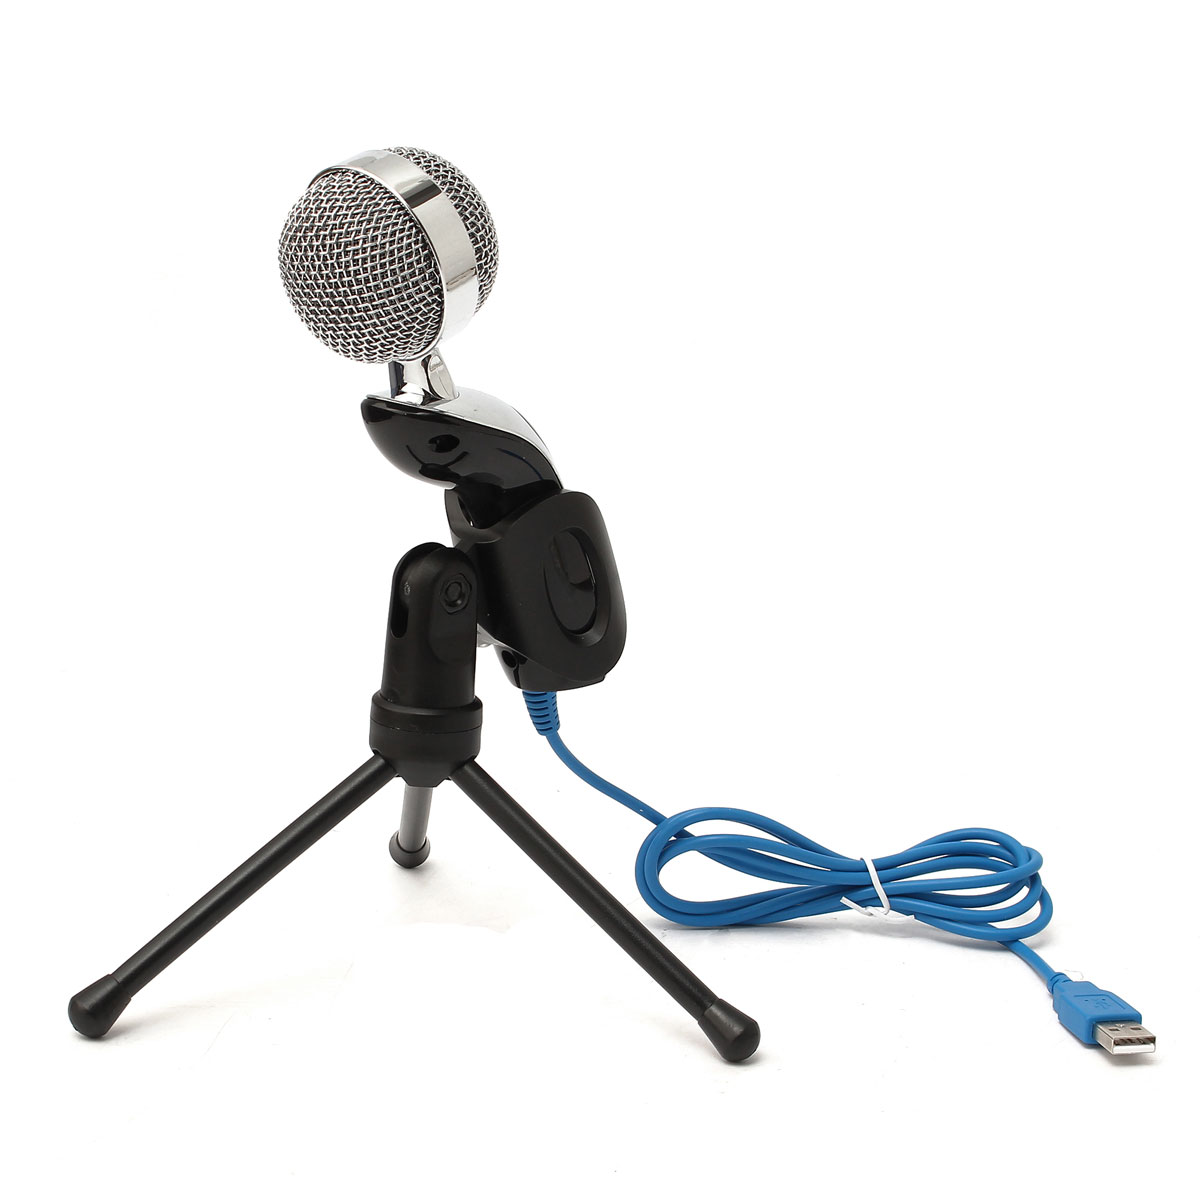 New USB Professional Desktop Condenser Microphone Mic Studio For PC Computer Recording Condenser Mic With Stand Shock Mount